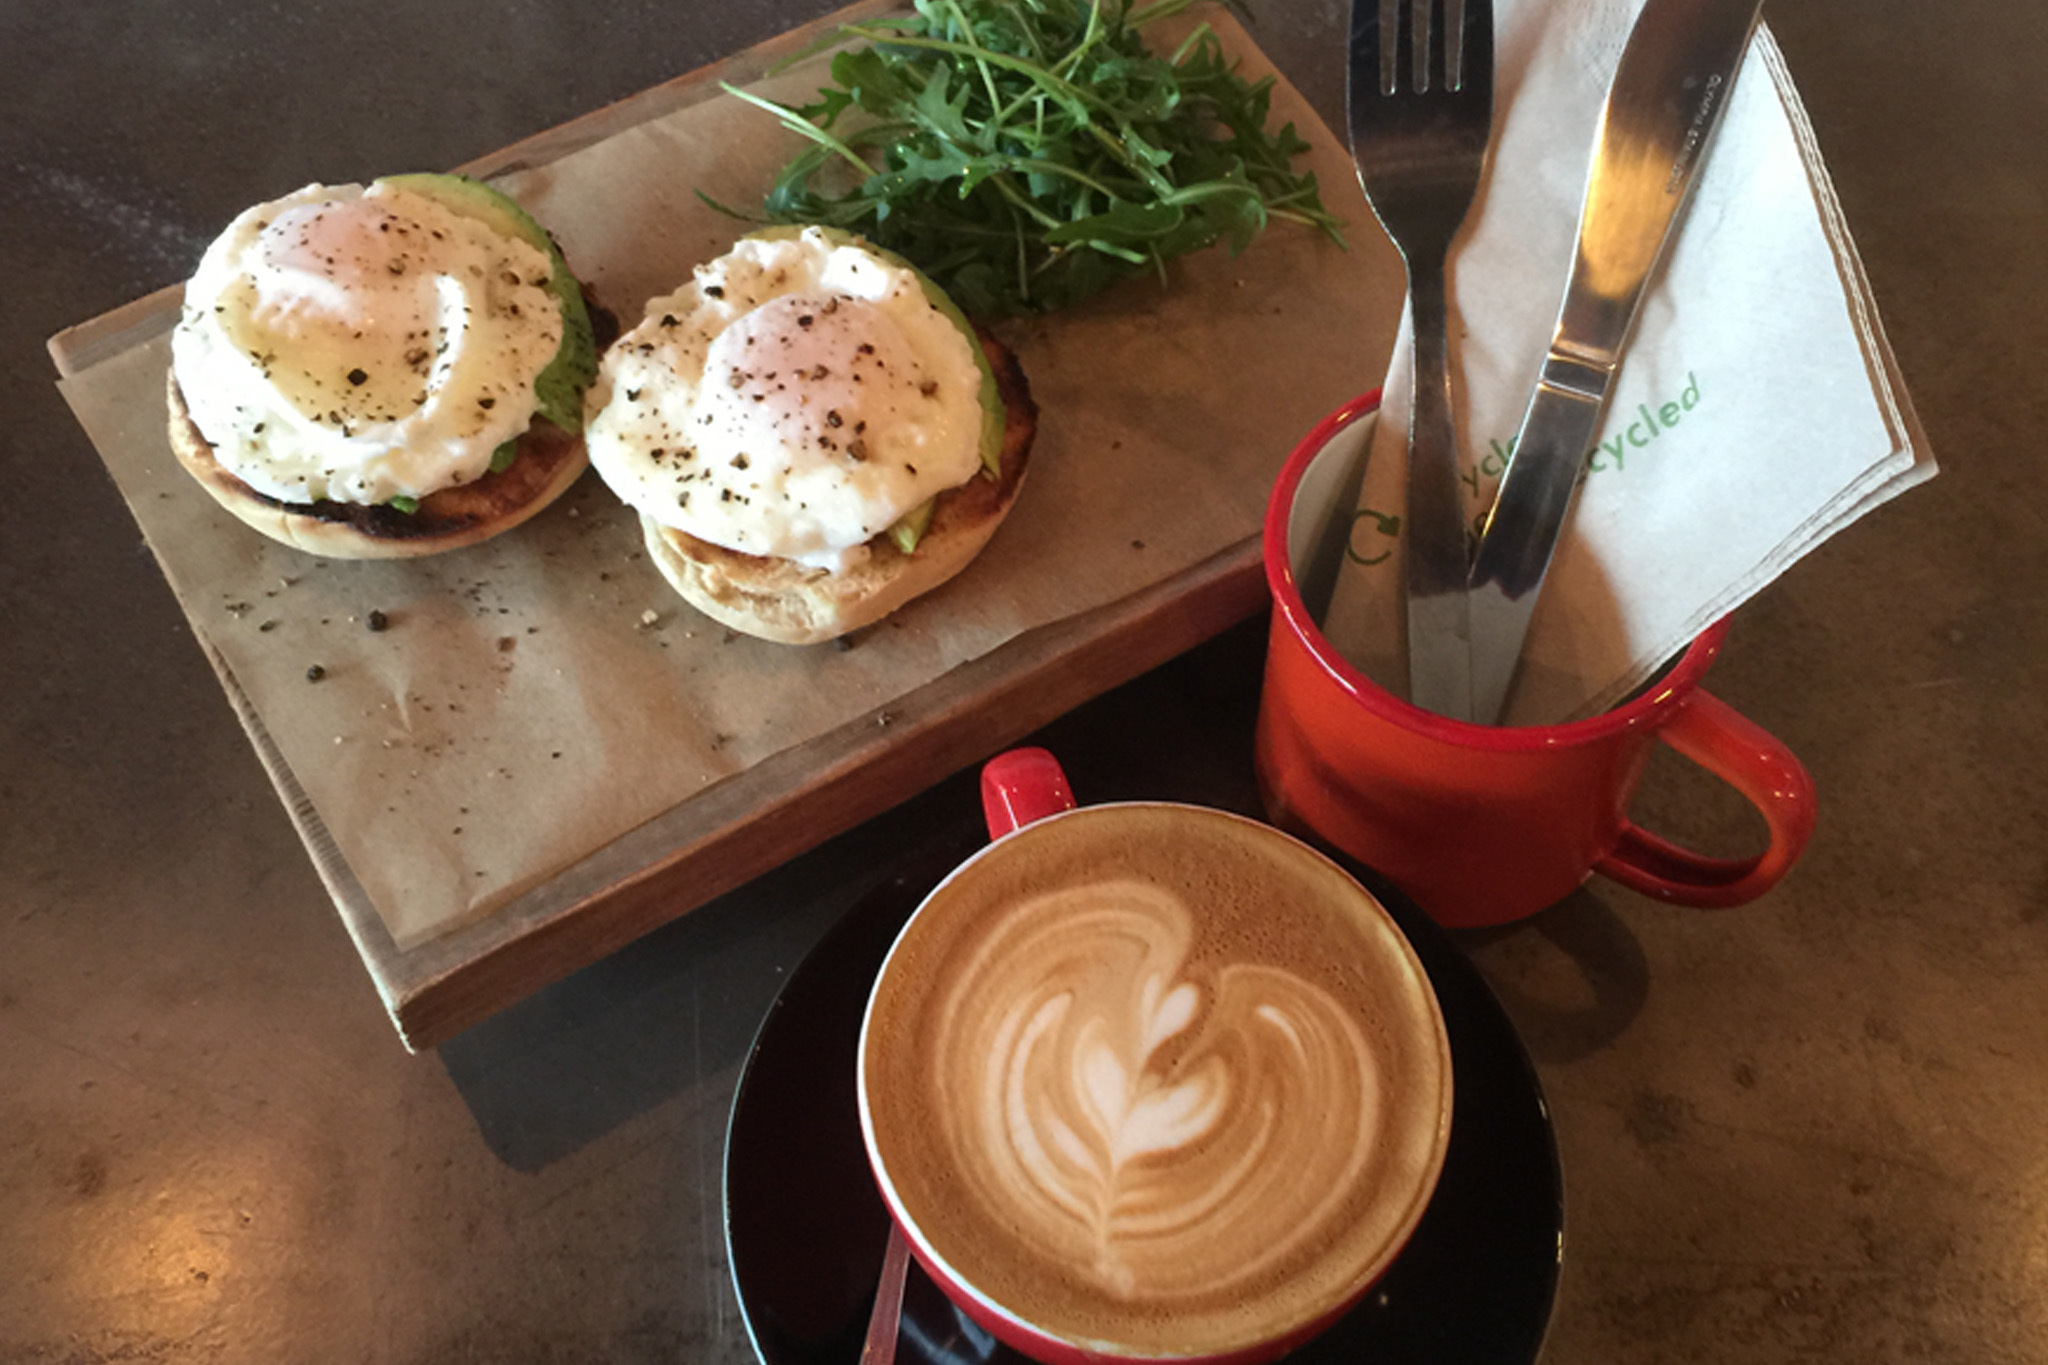 Best brunch spots in Birmingham